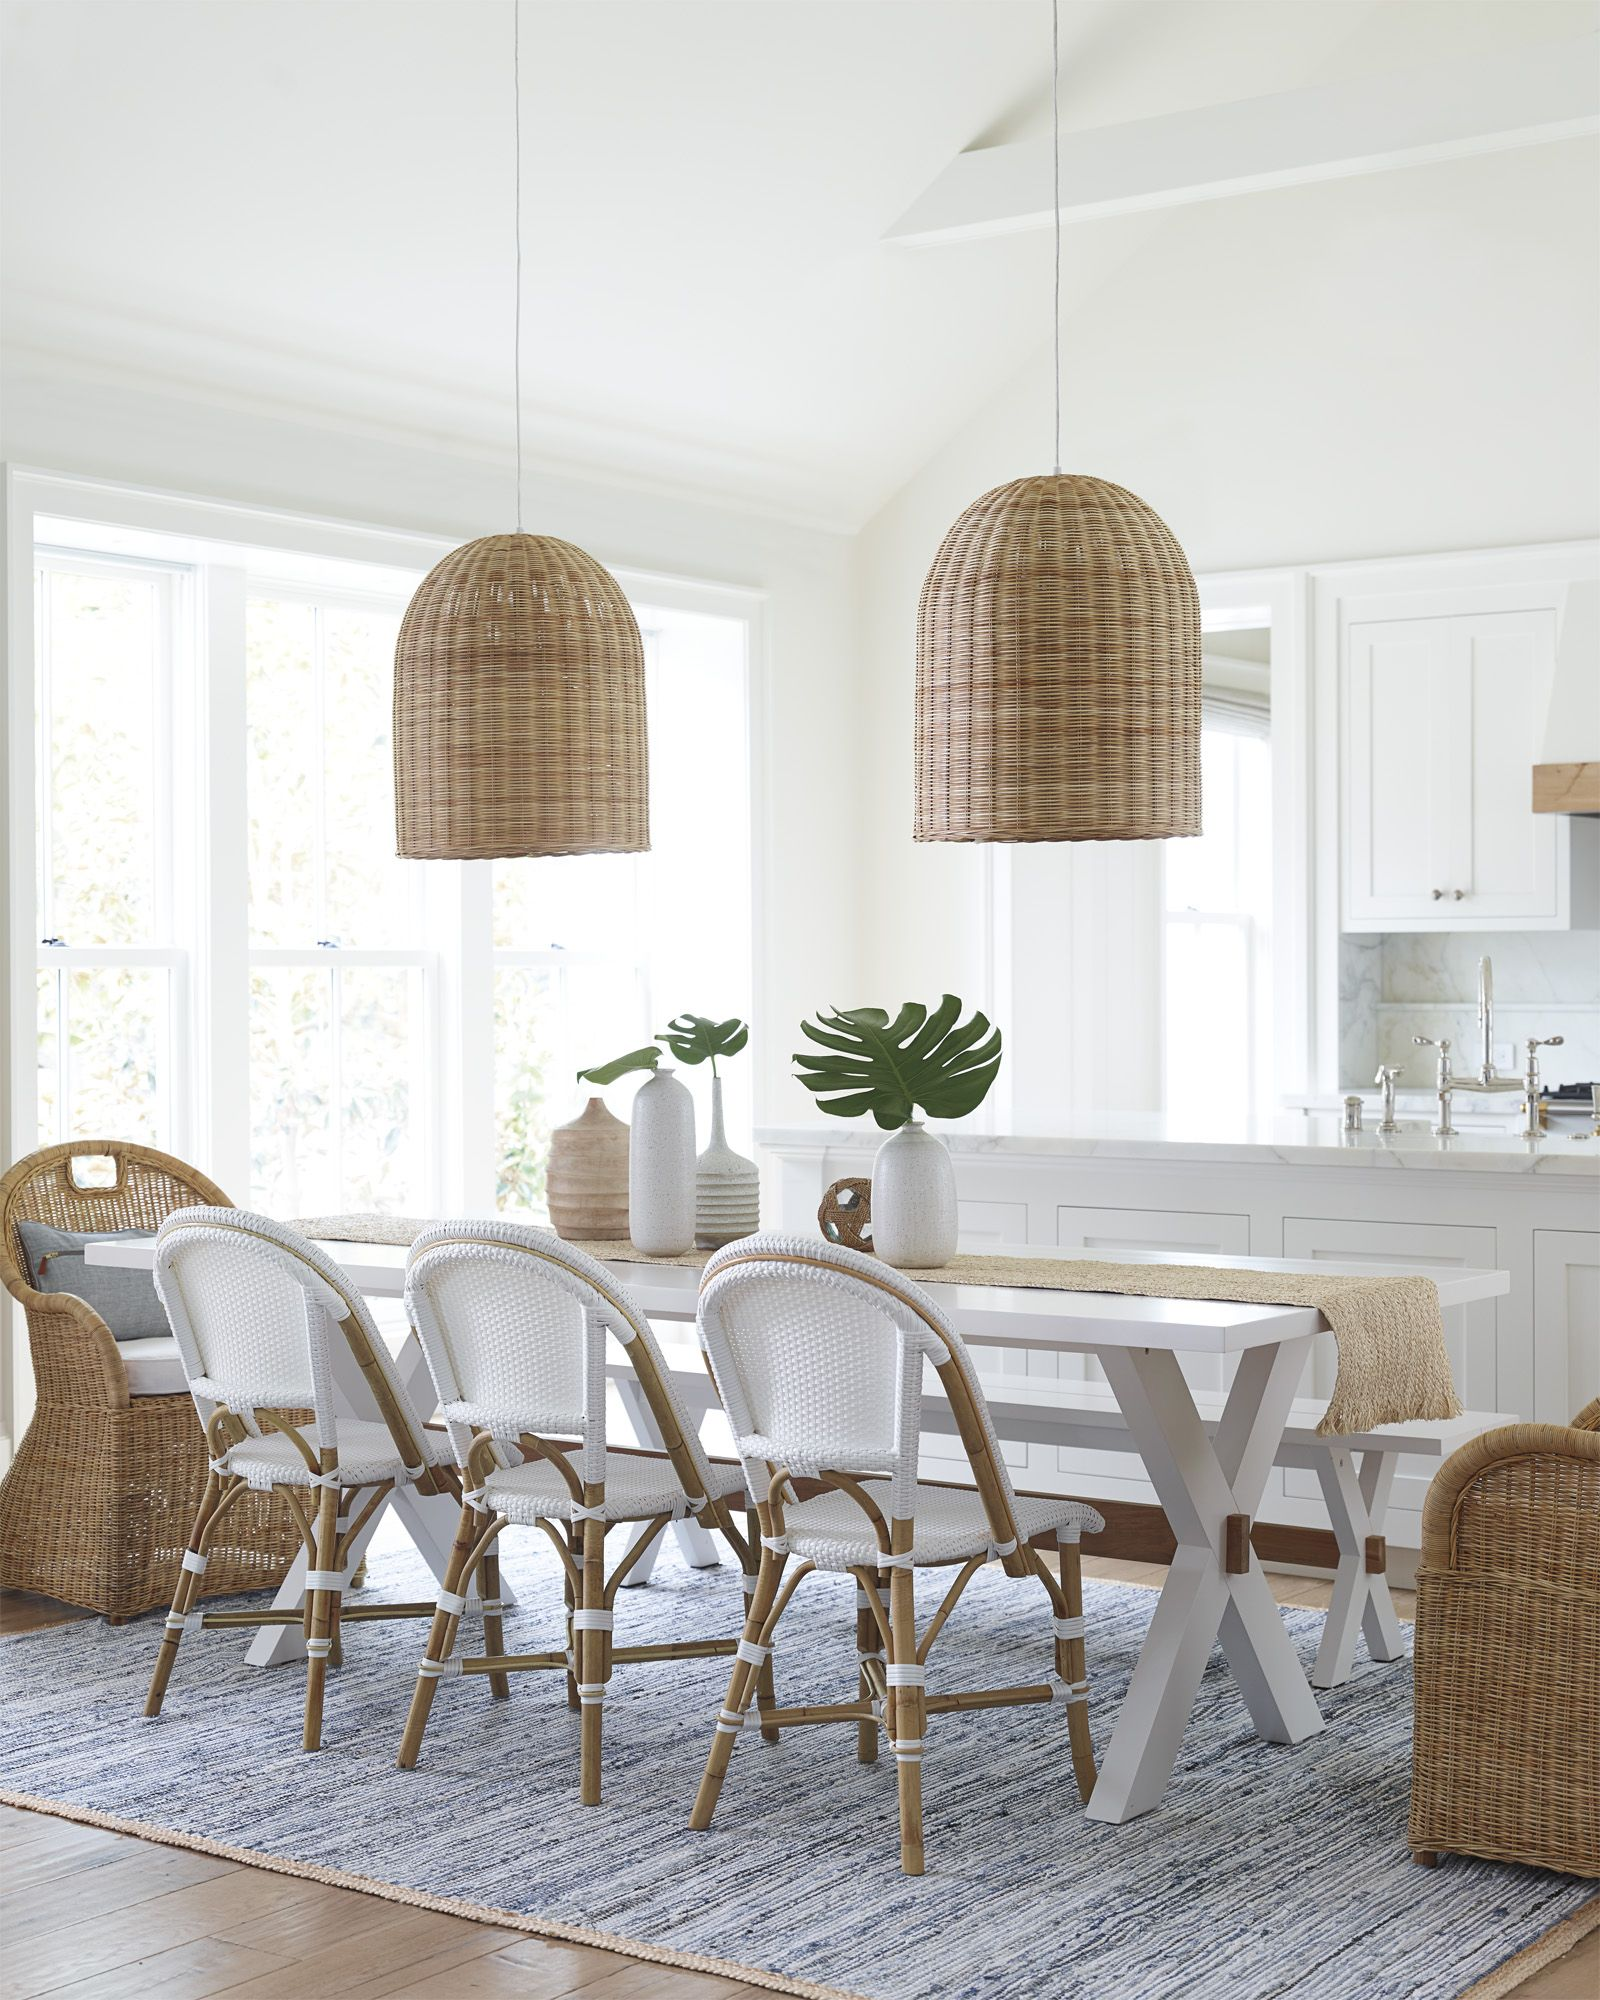 Esszimmer Celle Facebook Serena Lily California Dining Table In 2019 Beach House Decor